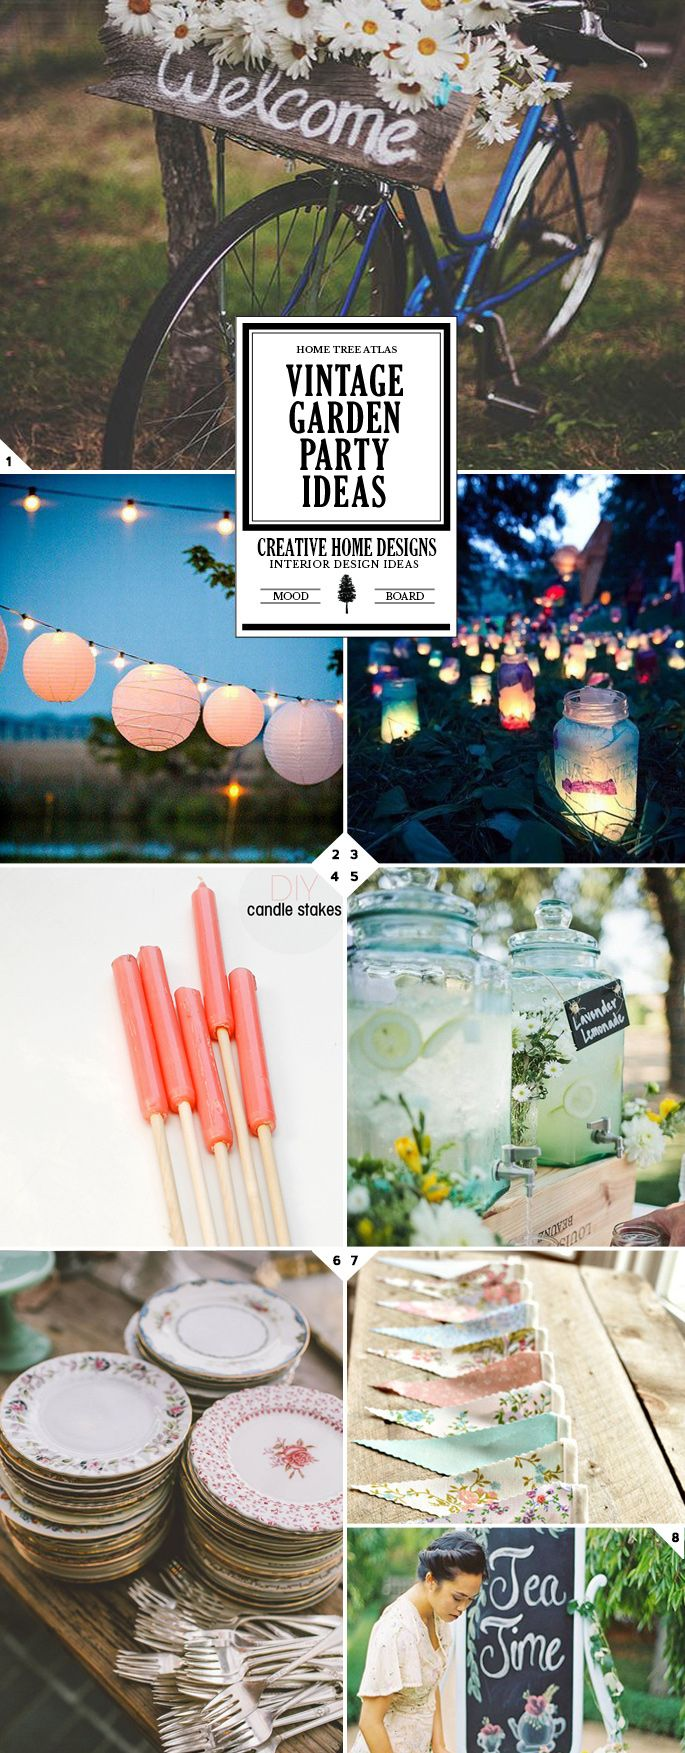 My ideas for vintage 40th birthday party & Macmillan summer lights fundraising - Host A Beautiful Vintage Garden Party: A Mood Board of Ideas for Decorations